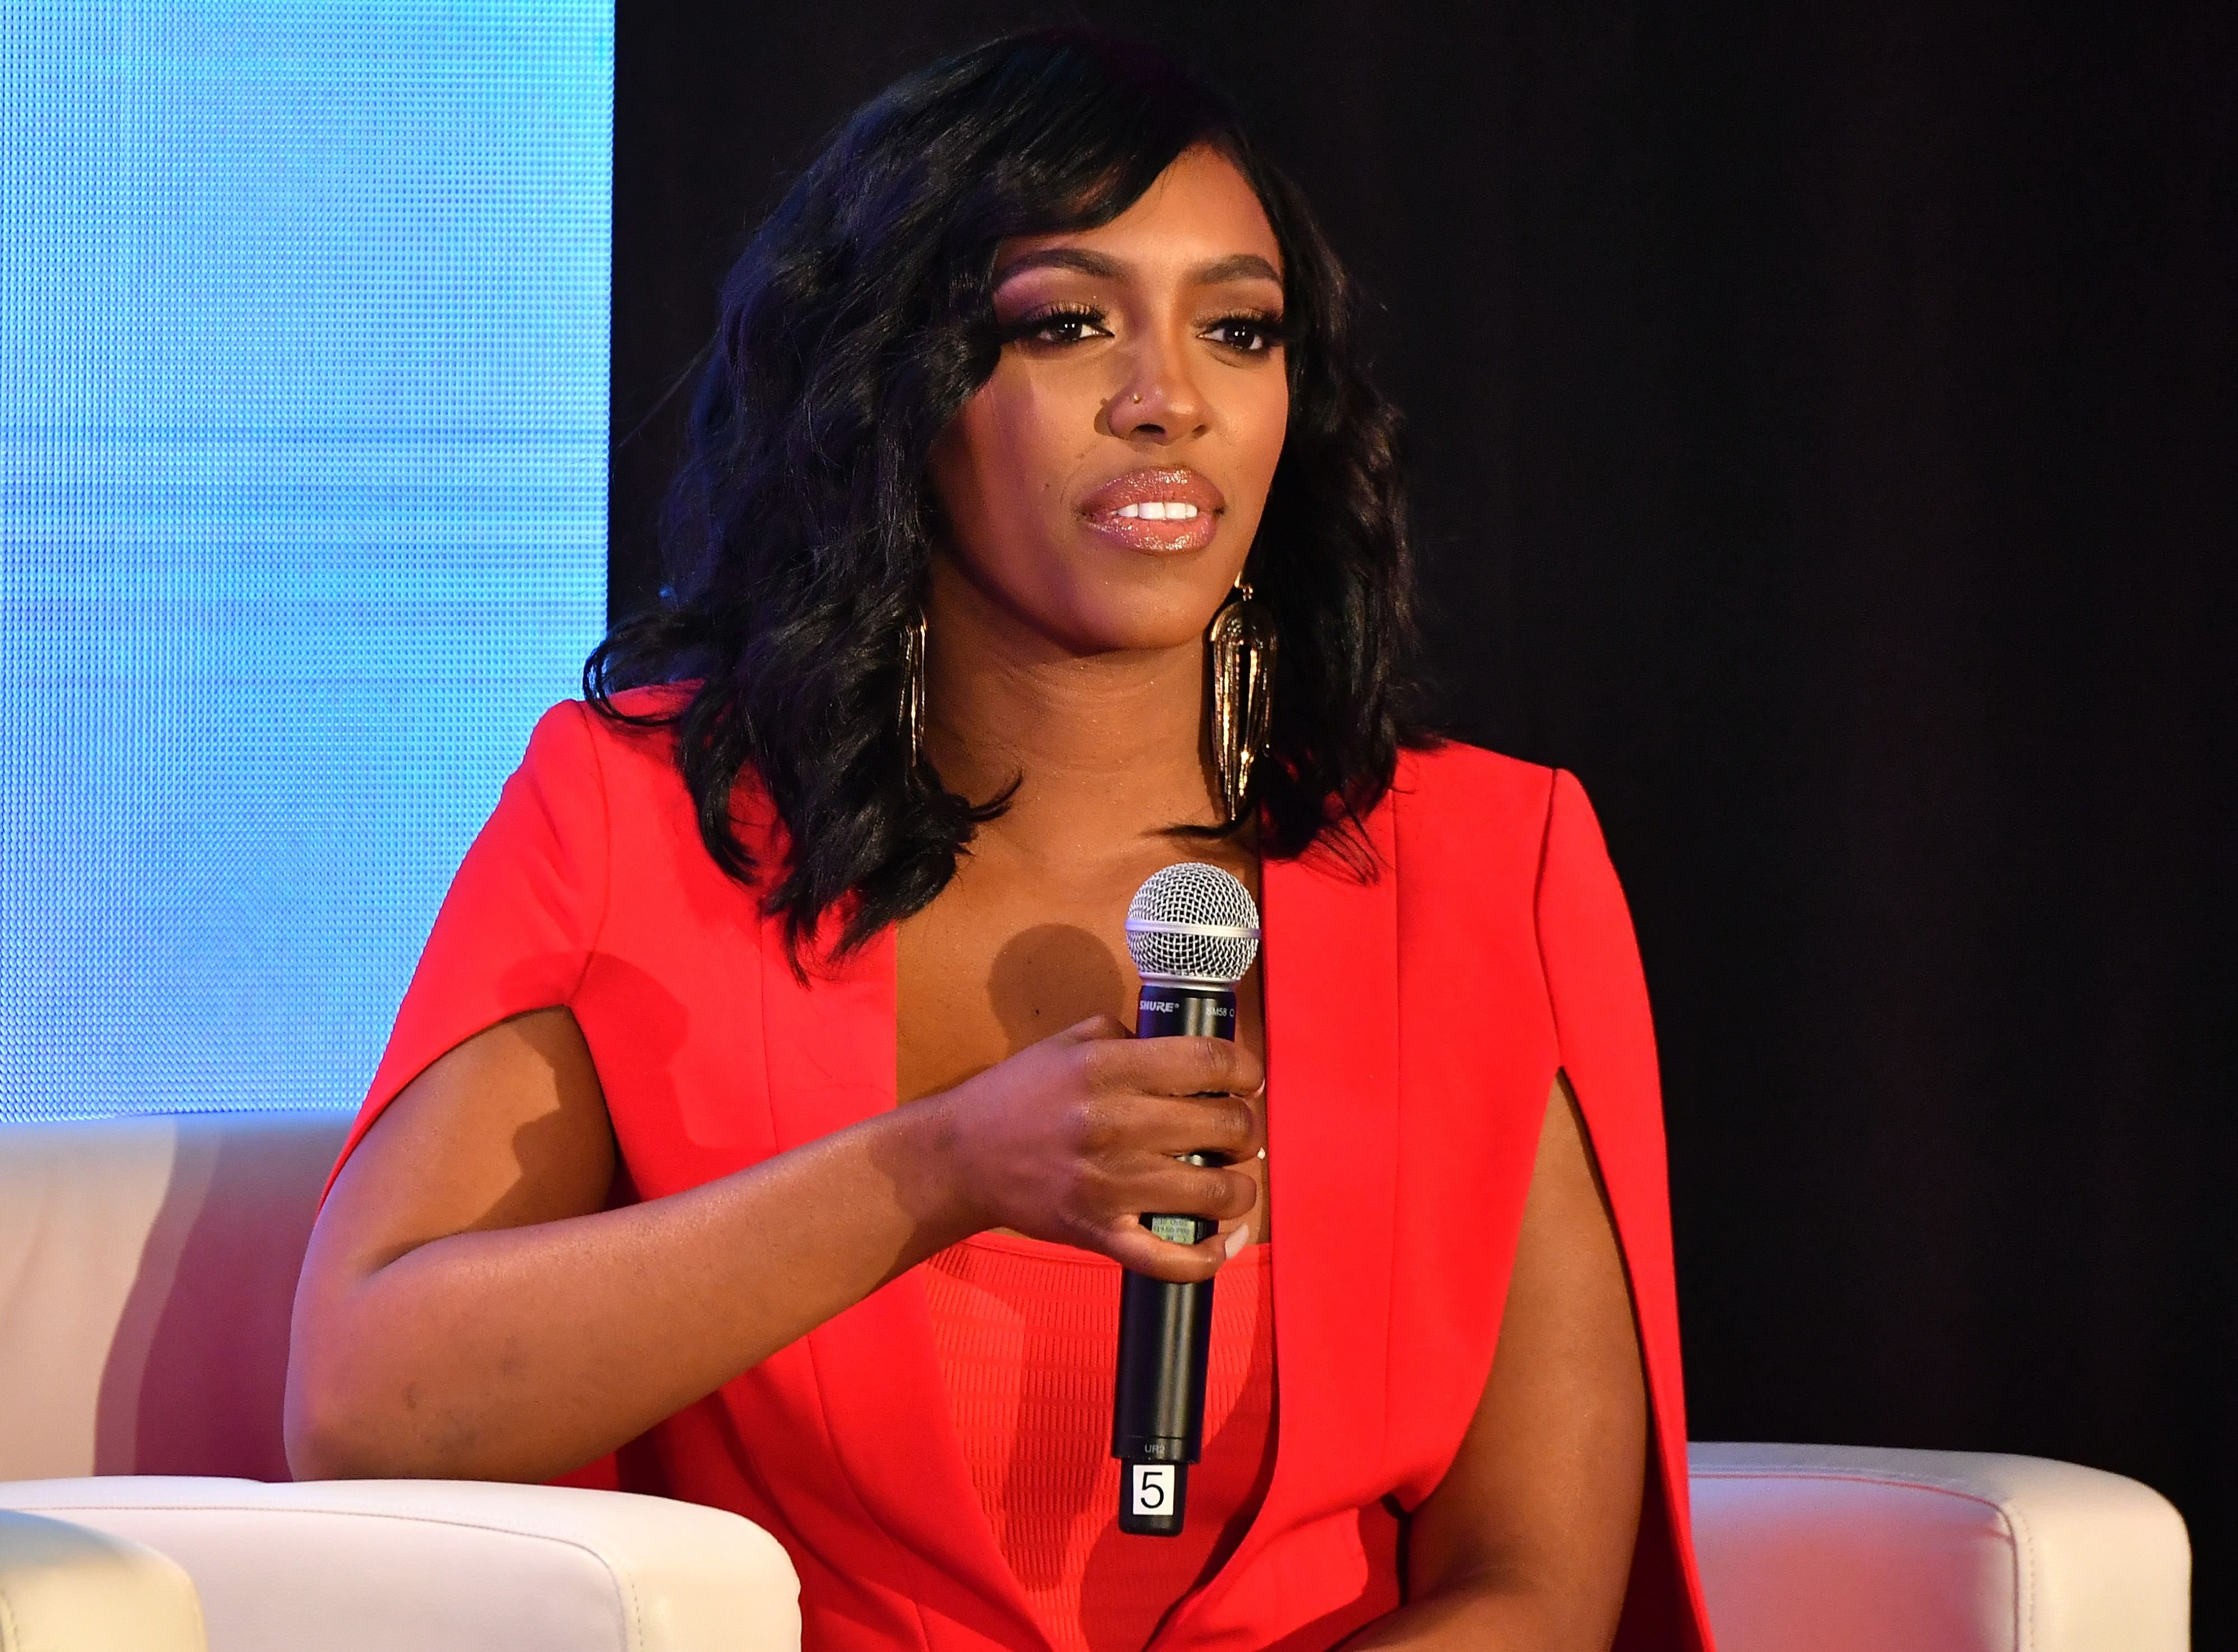 Porsha Williams onstage during the A3C Festival & Conference on October 10, 2019 in Atlanta, Georgia.   Source: Getty Images